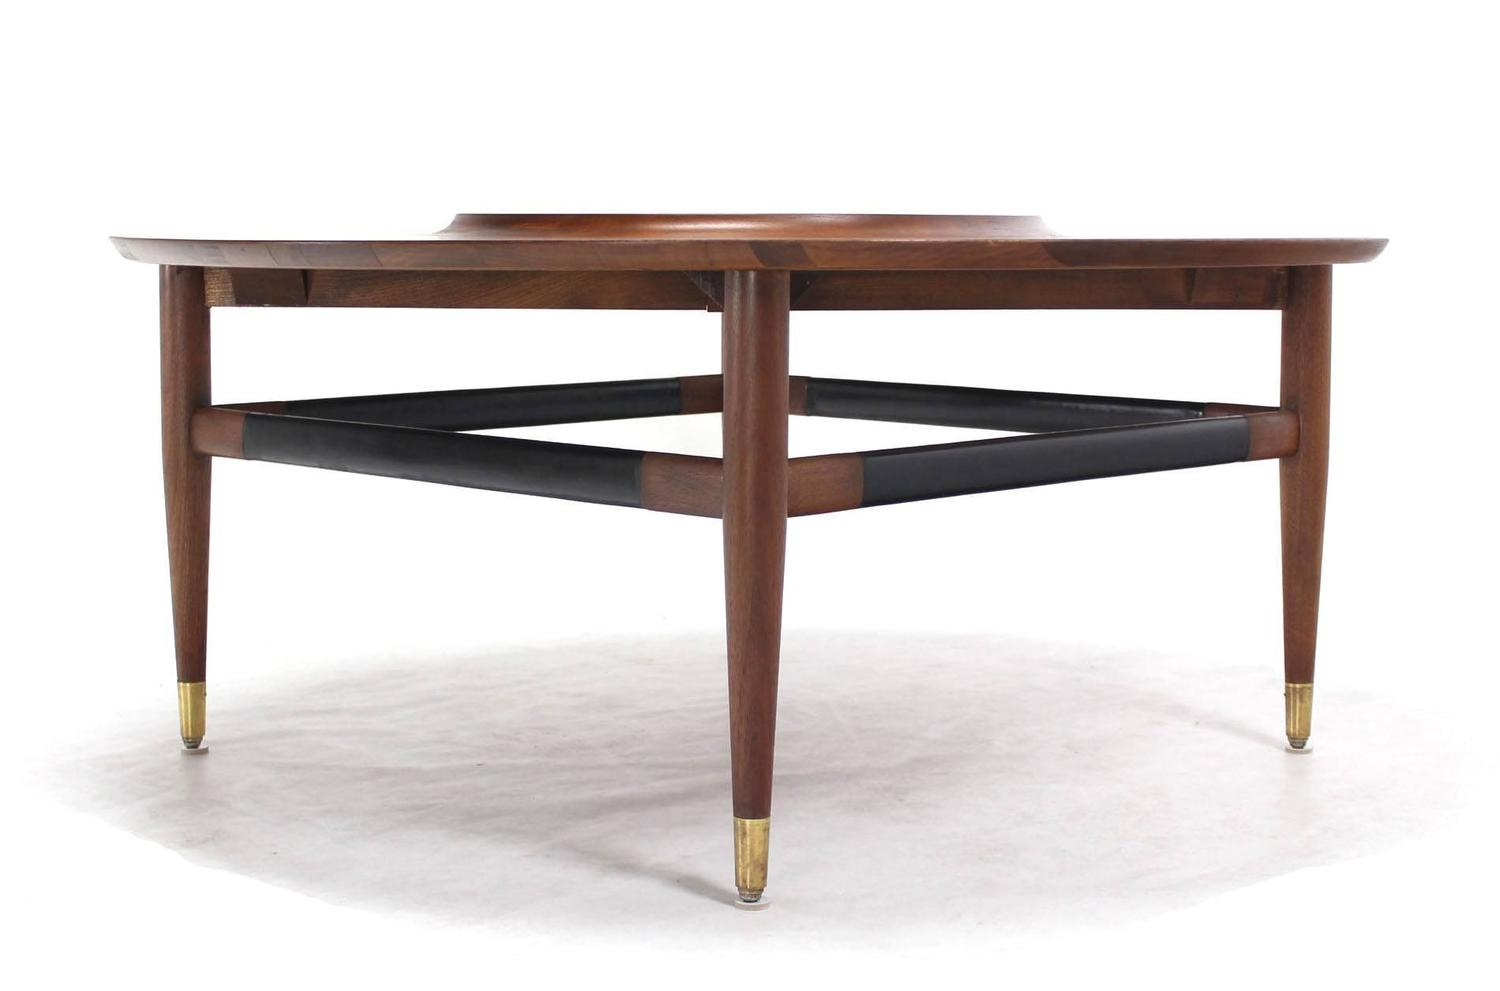 Round Walnut Coffee Table With Black Laminate Lazy Susan Center For Sale At 1stdibs